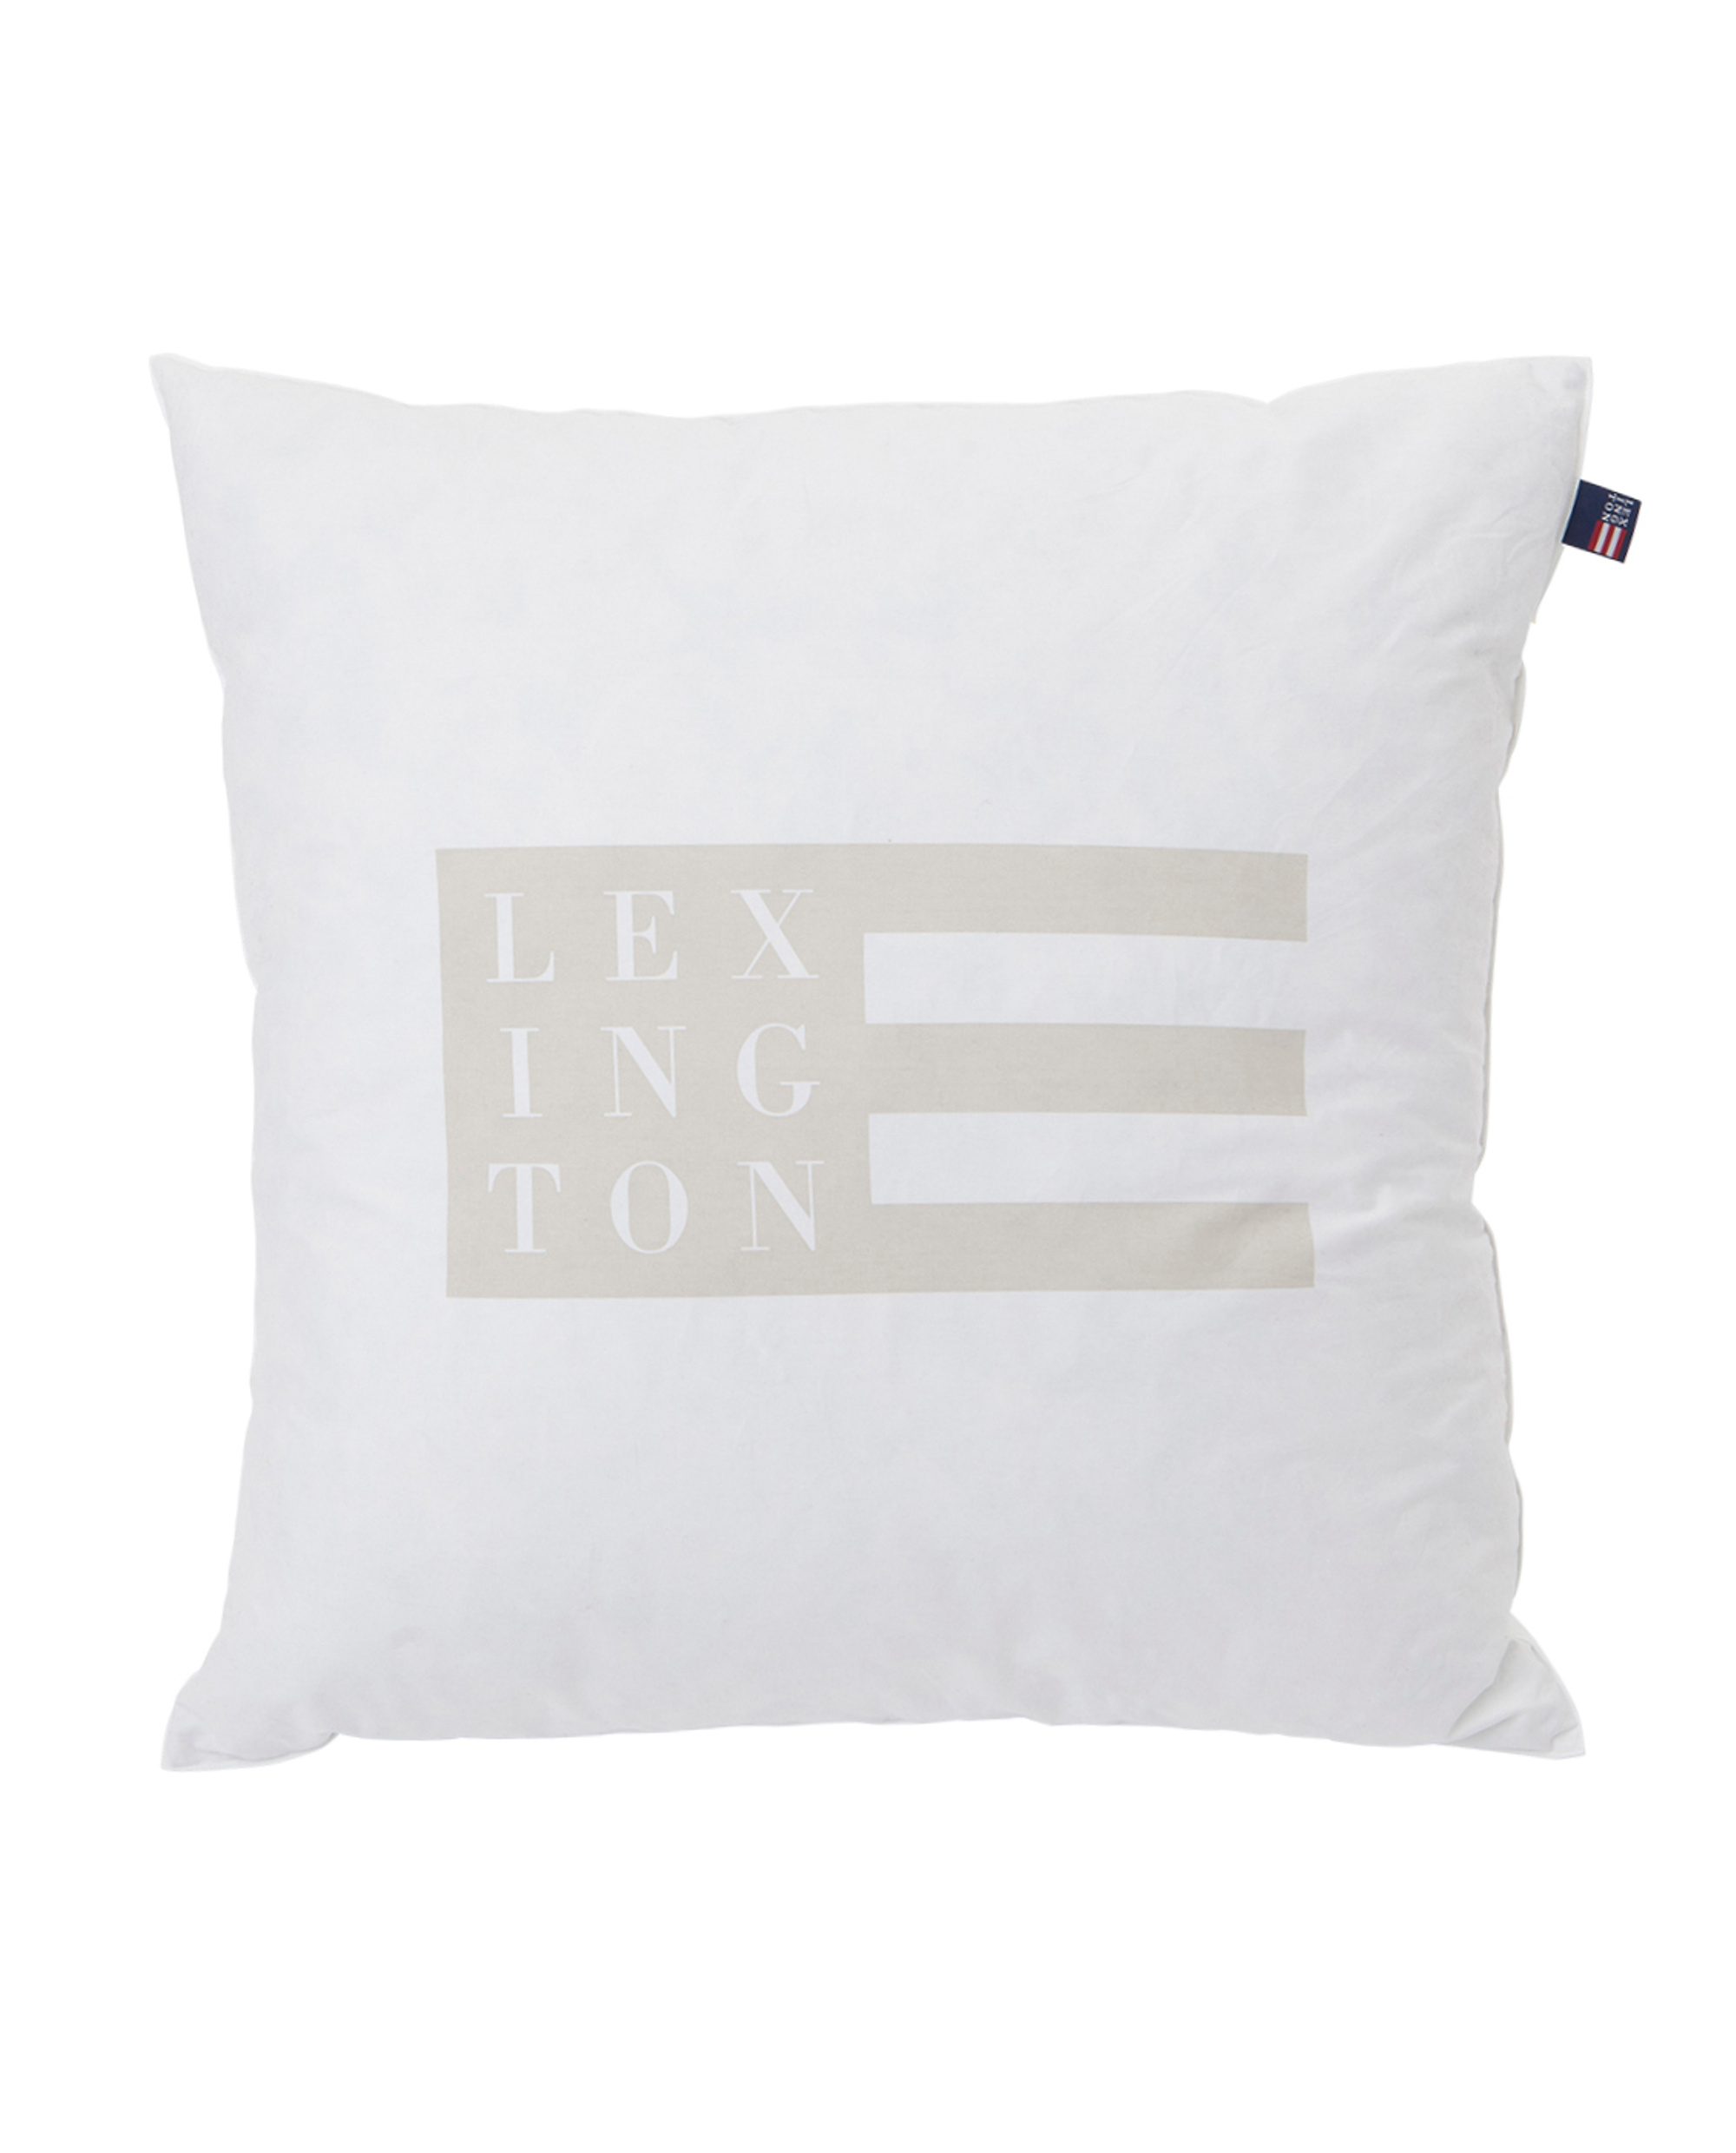 Lexington Feather Pillow, Large